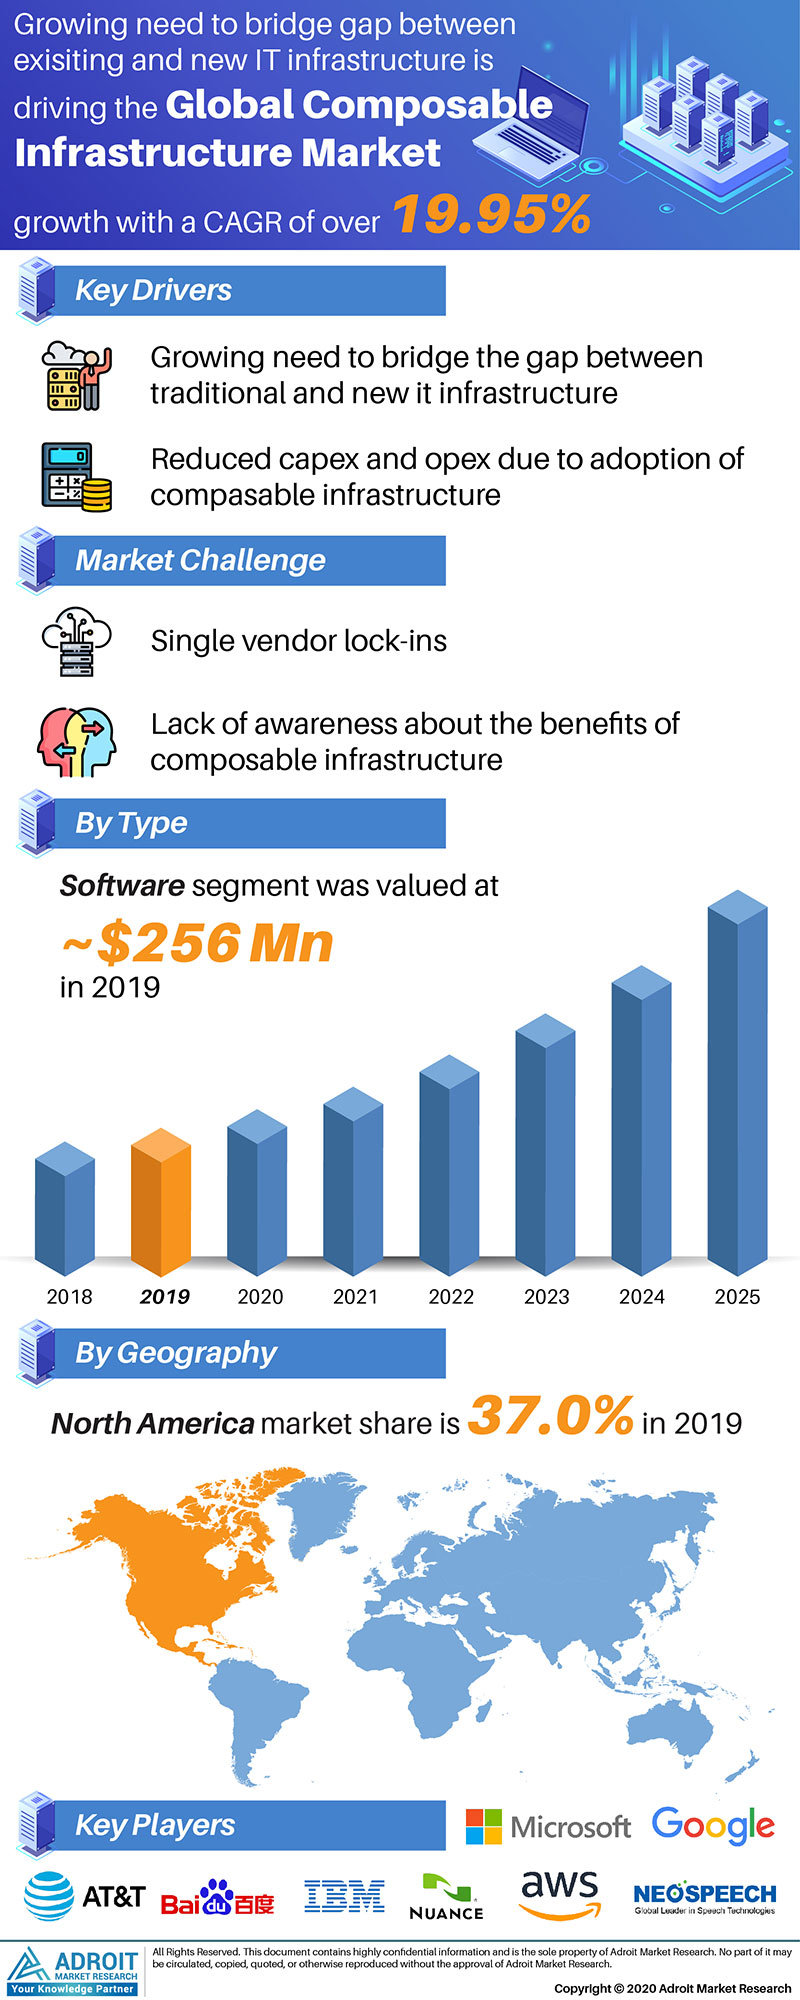 Composable Infrastructure Market Size 2017 By Application, Product, Region and Forecast 2019 to 2025